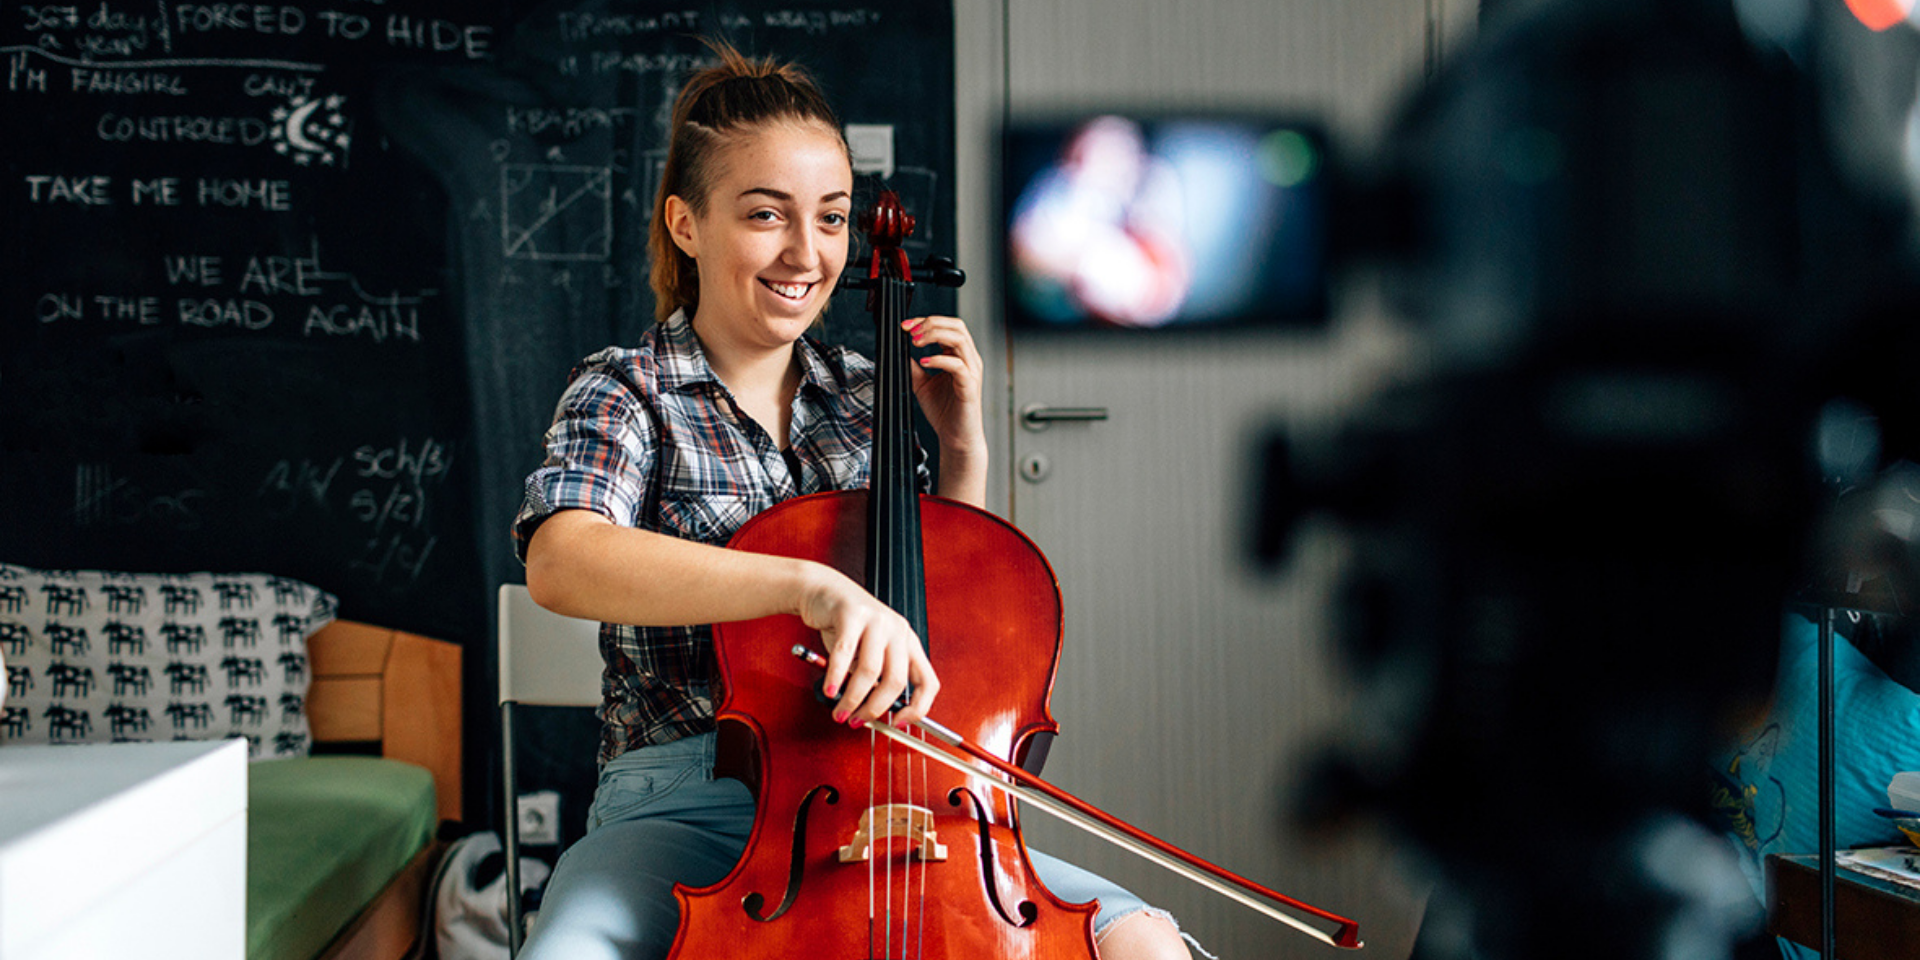 Girl playing cello facing a video camera